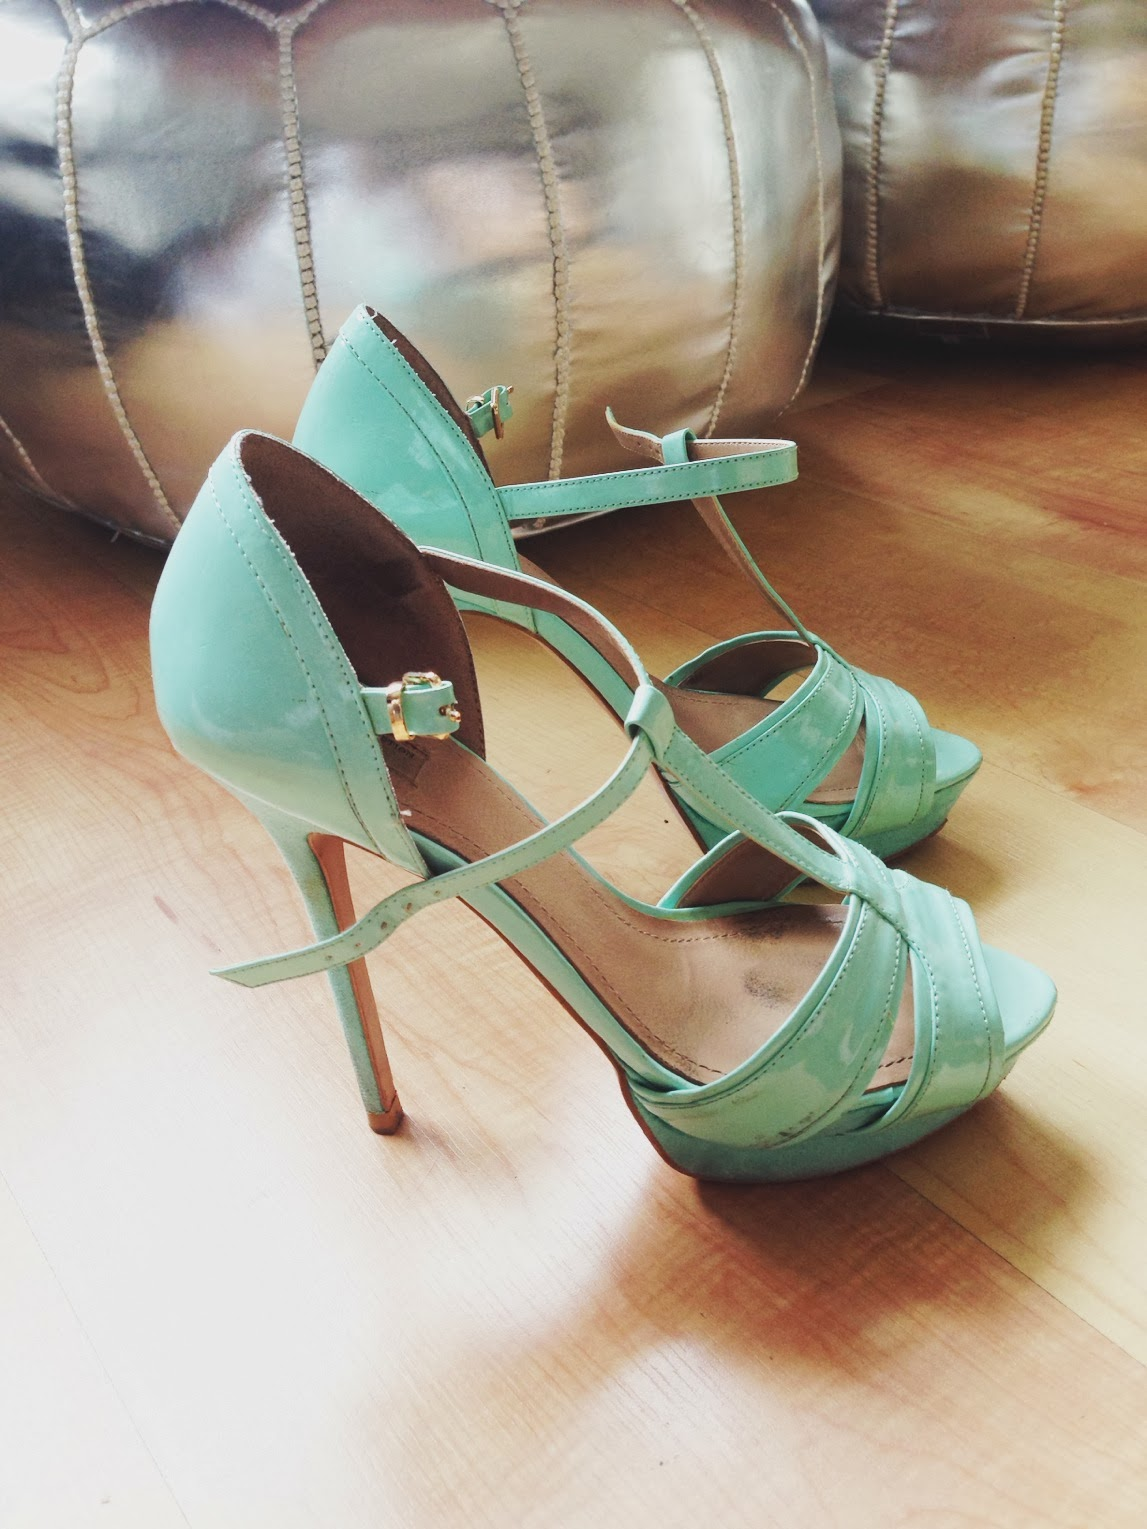 mint, zara, sandals, pumps, shoes, stilettos, heels, strappy, shopping, dressy, high heel, sexy, cute, 2014, 2013